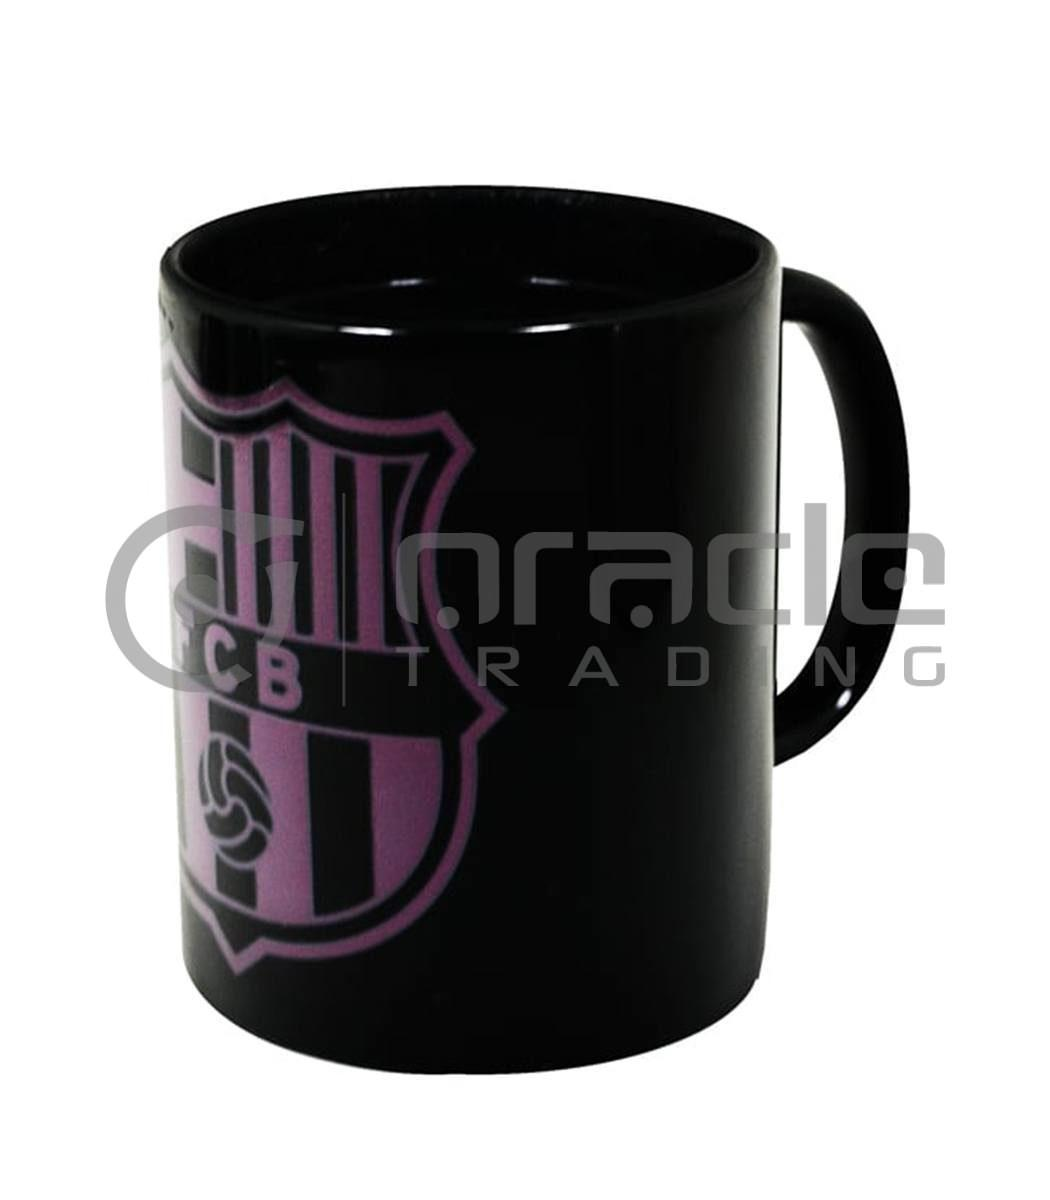 Barcelona Heat Reveal Mug (Boxed)